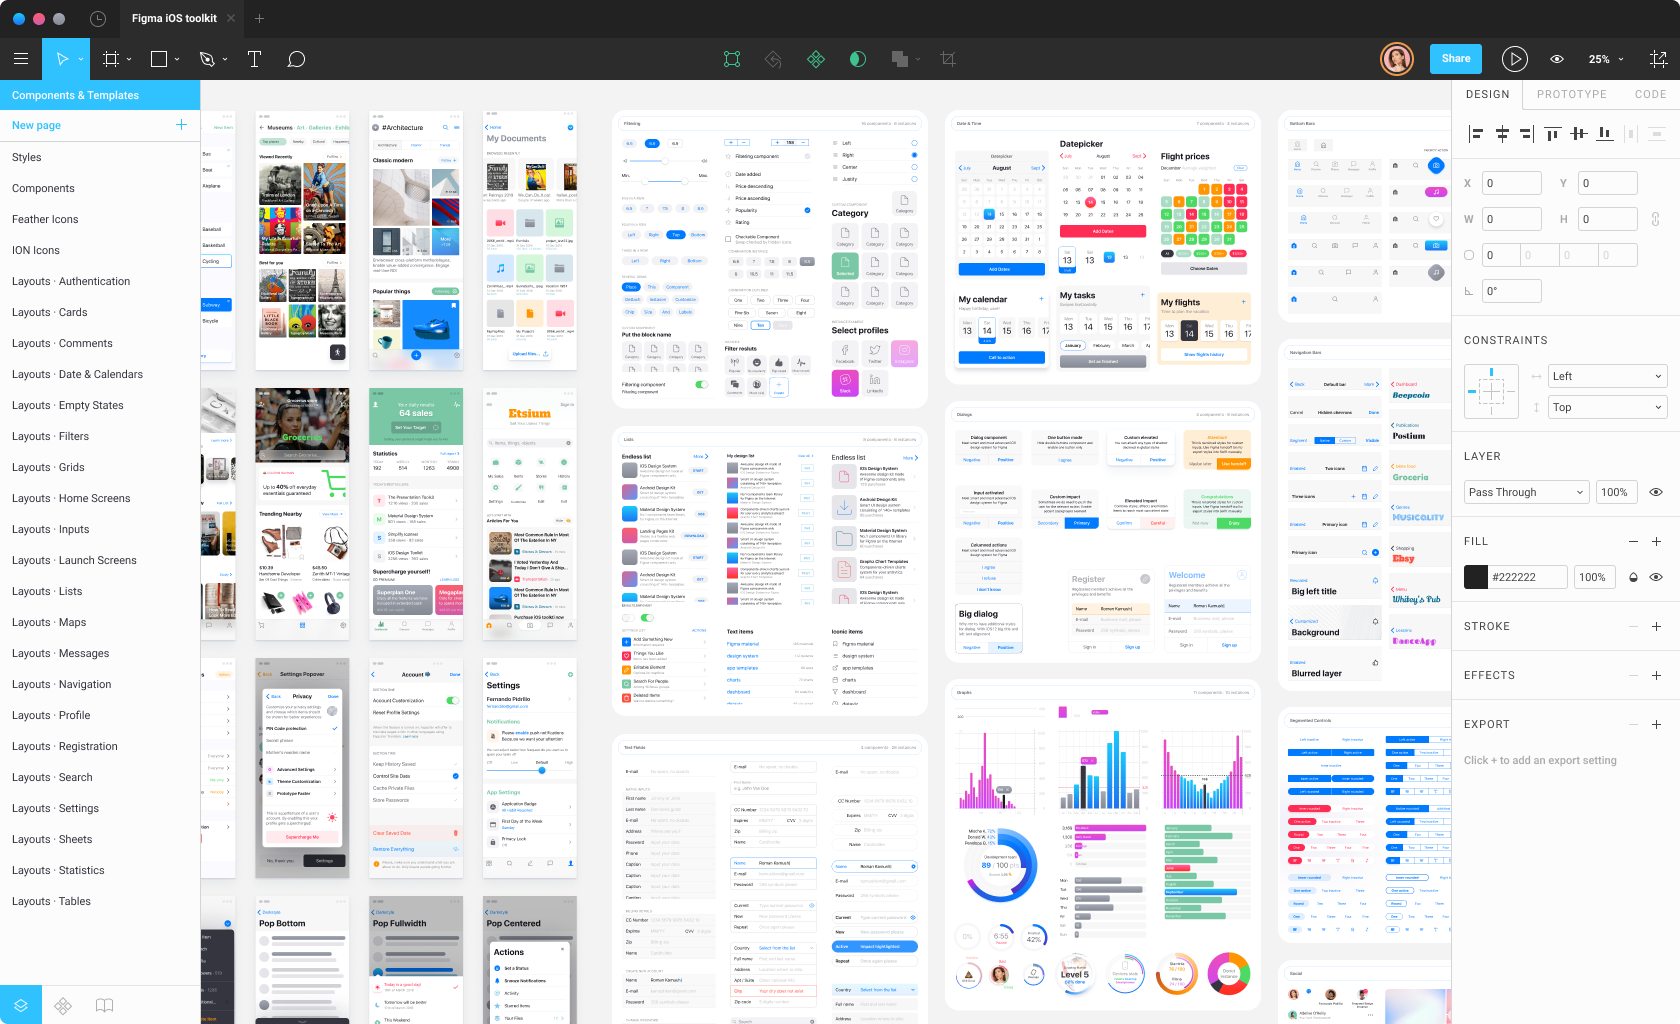 The Best UX Design Tools in 2019